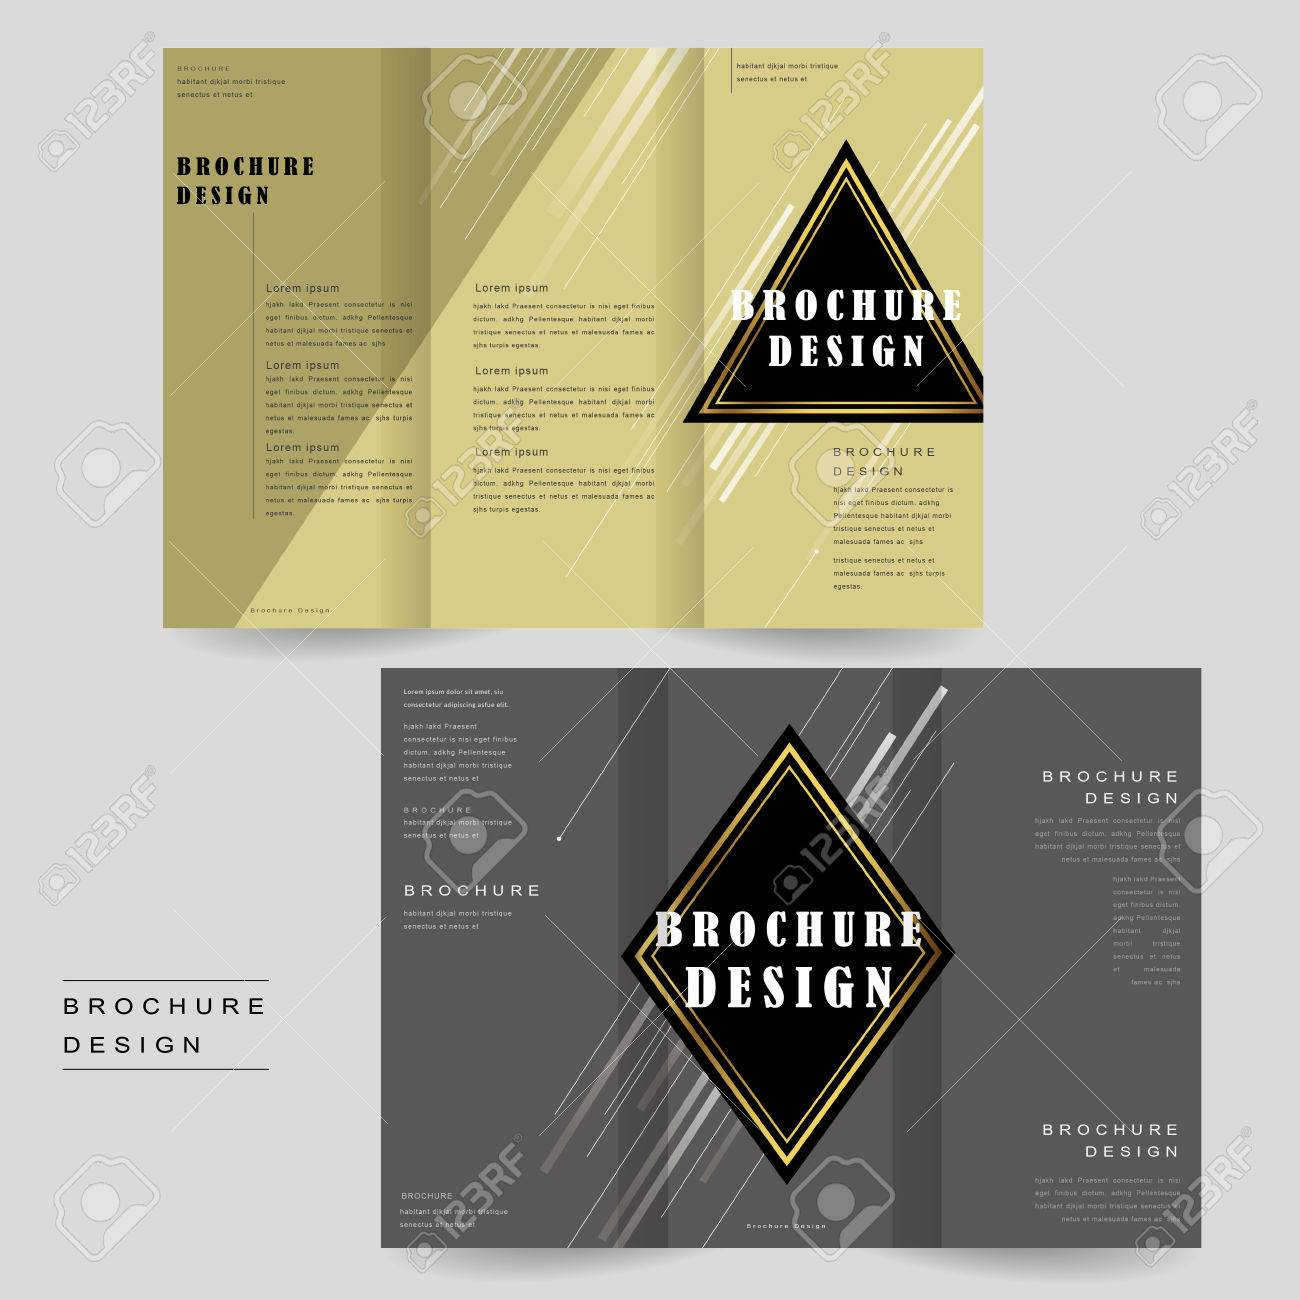 Elegant Tri Fold Brochure Template Design With Triangle And Rhombus